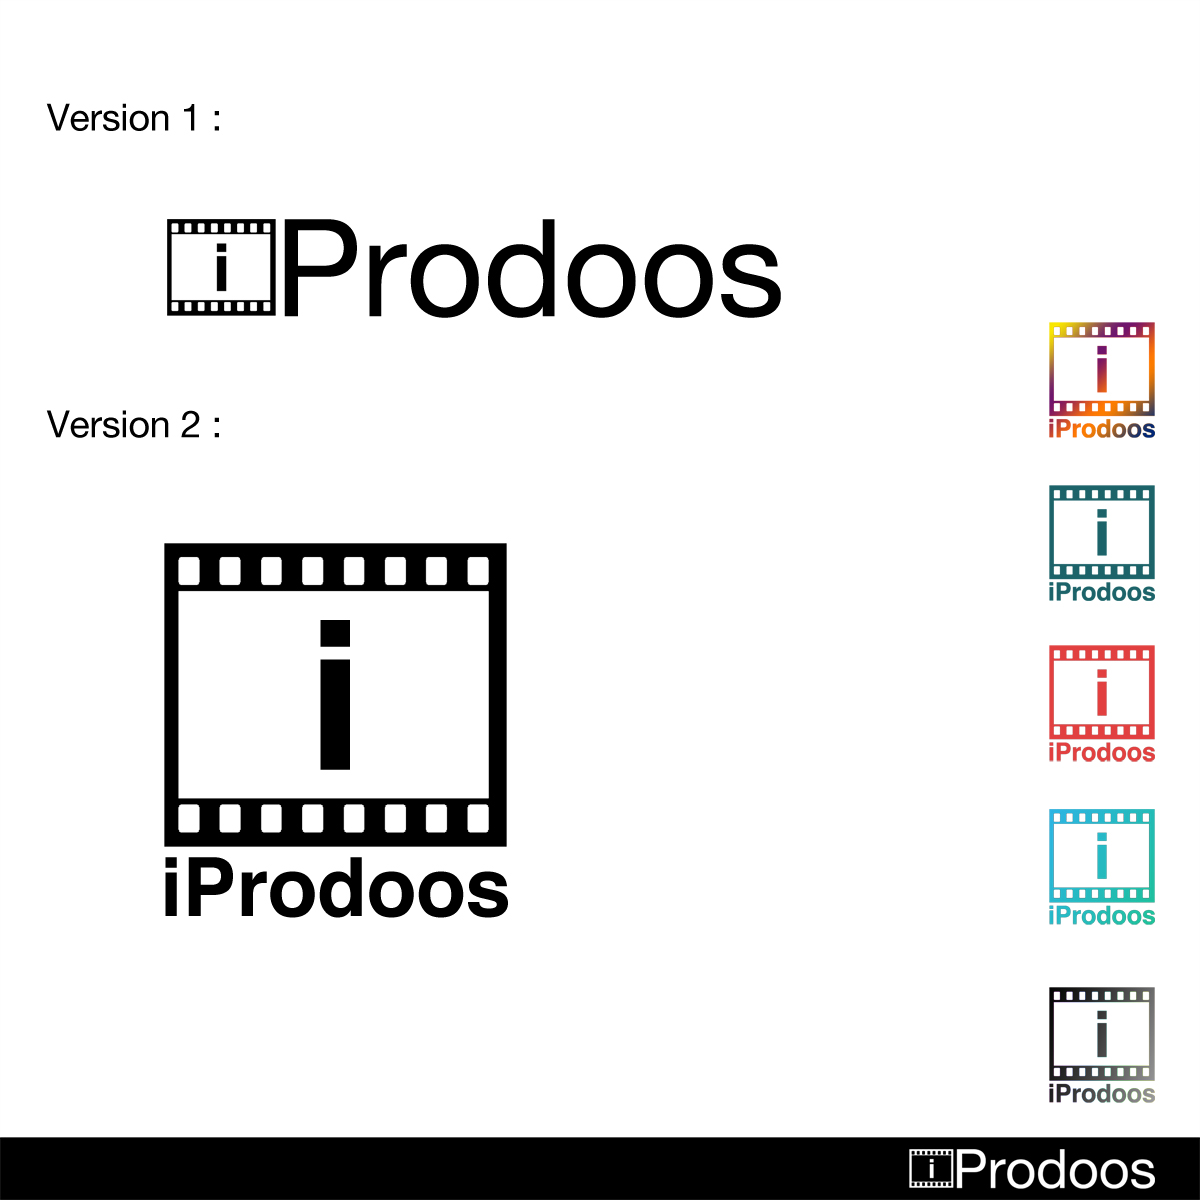 Logo Design by Utkarsh Bhandari - Entry No. 26 in the Logo Design Contest New Logo Design for iProdoos.